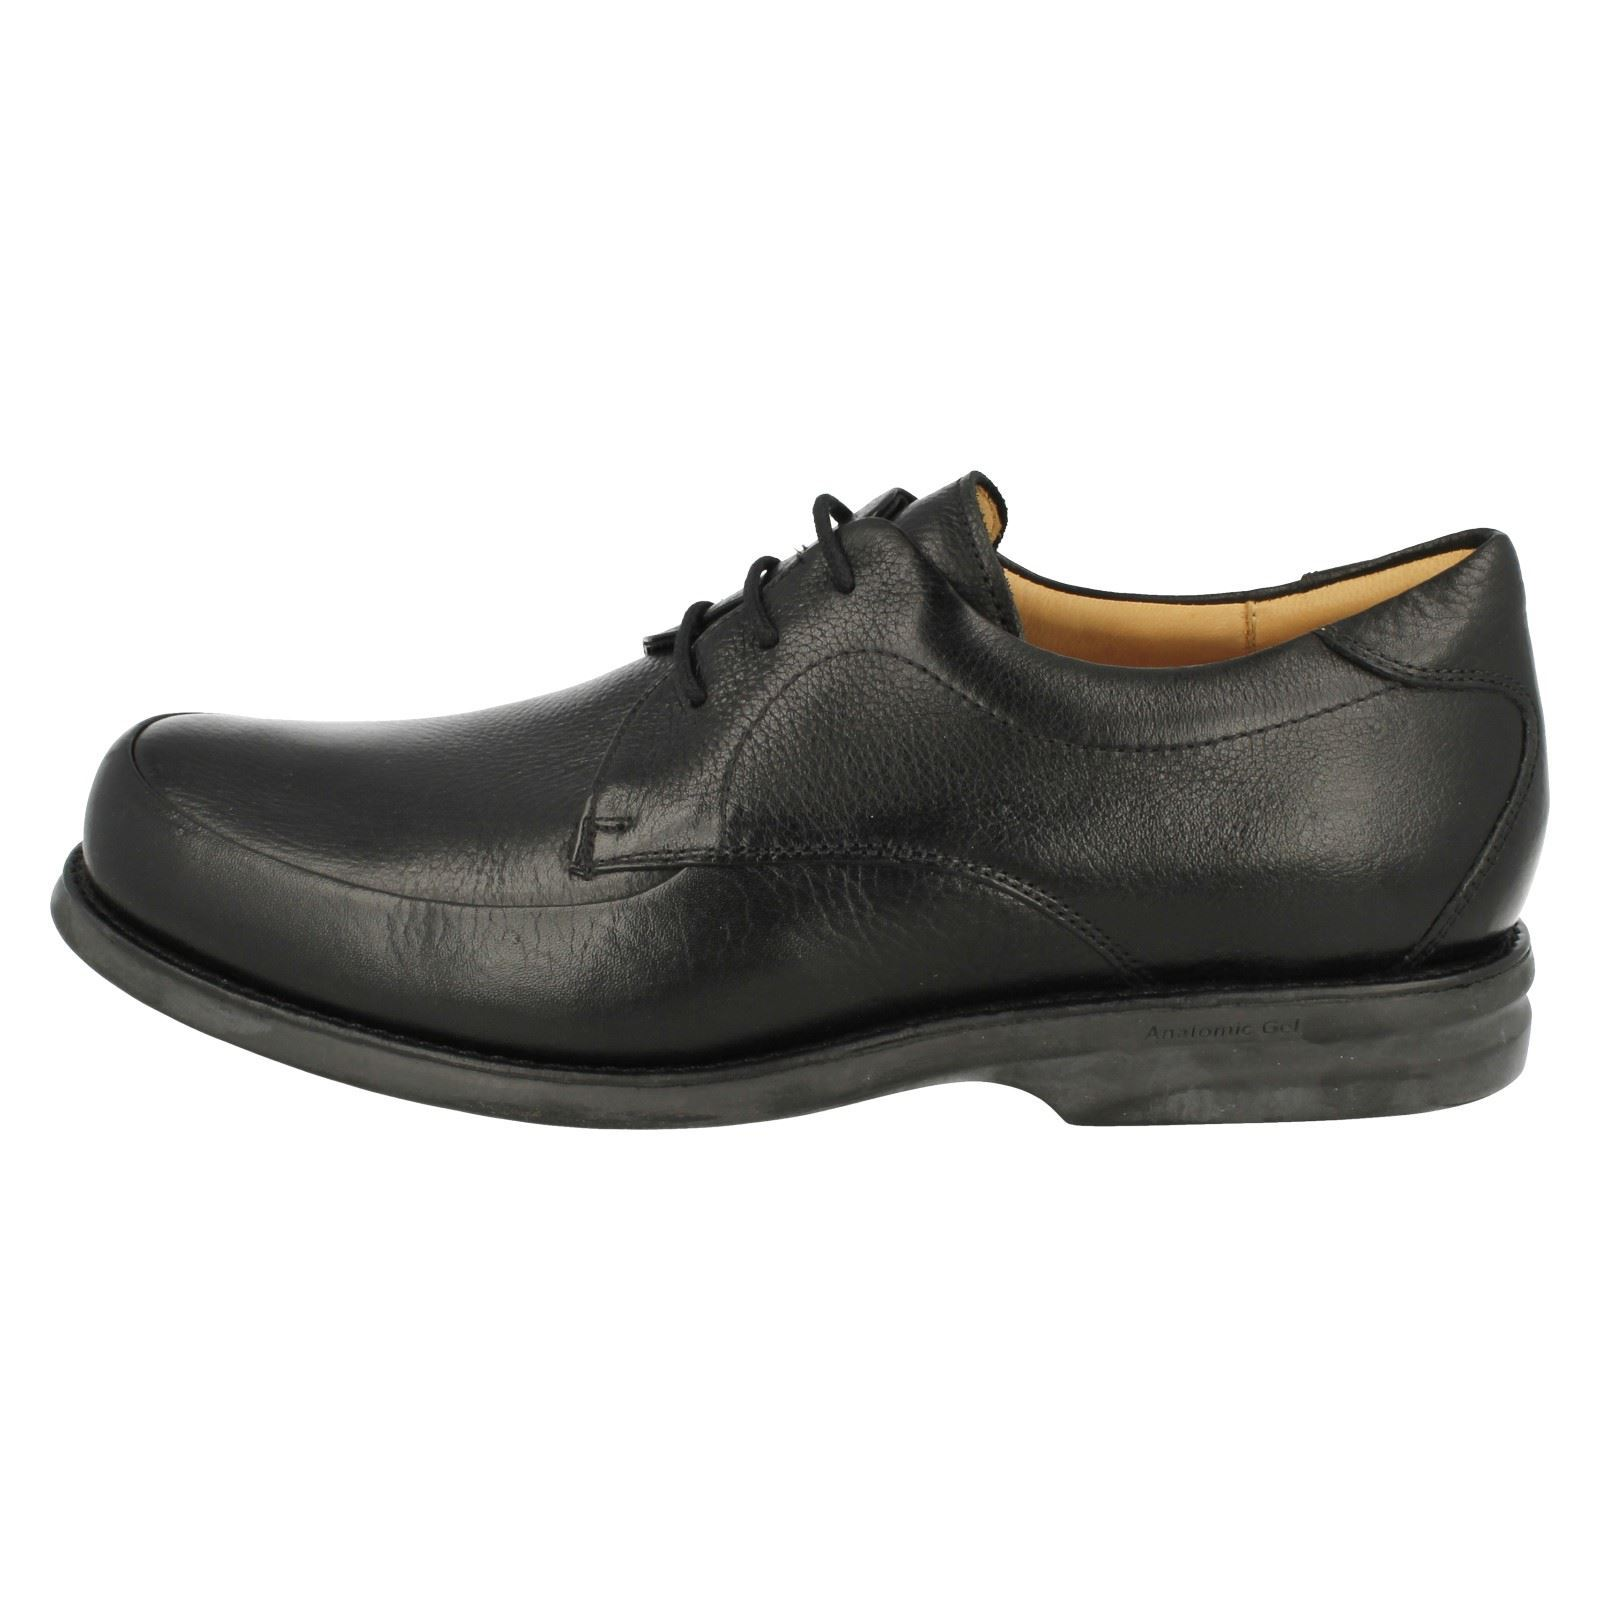 Uomo Anatomic Leder Schuhes Formal Lace Up Fastening Schuhes Leder - 'New Recife' c72606